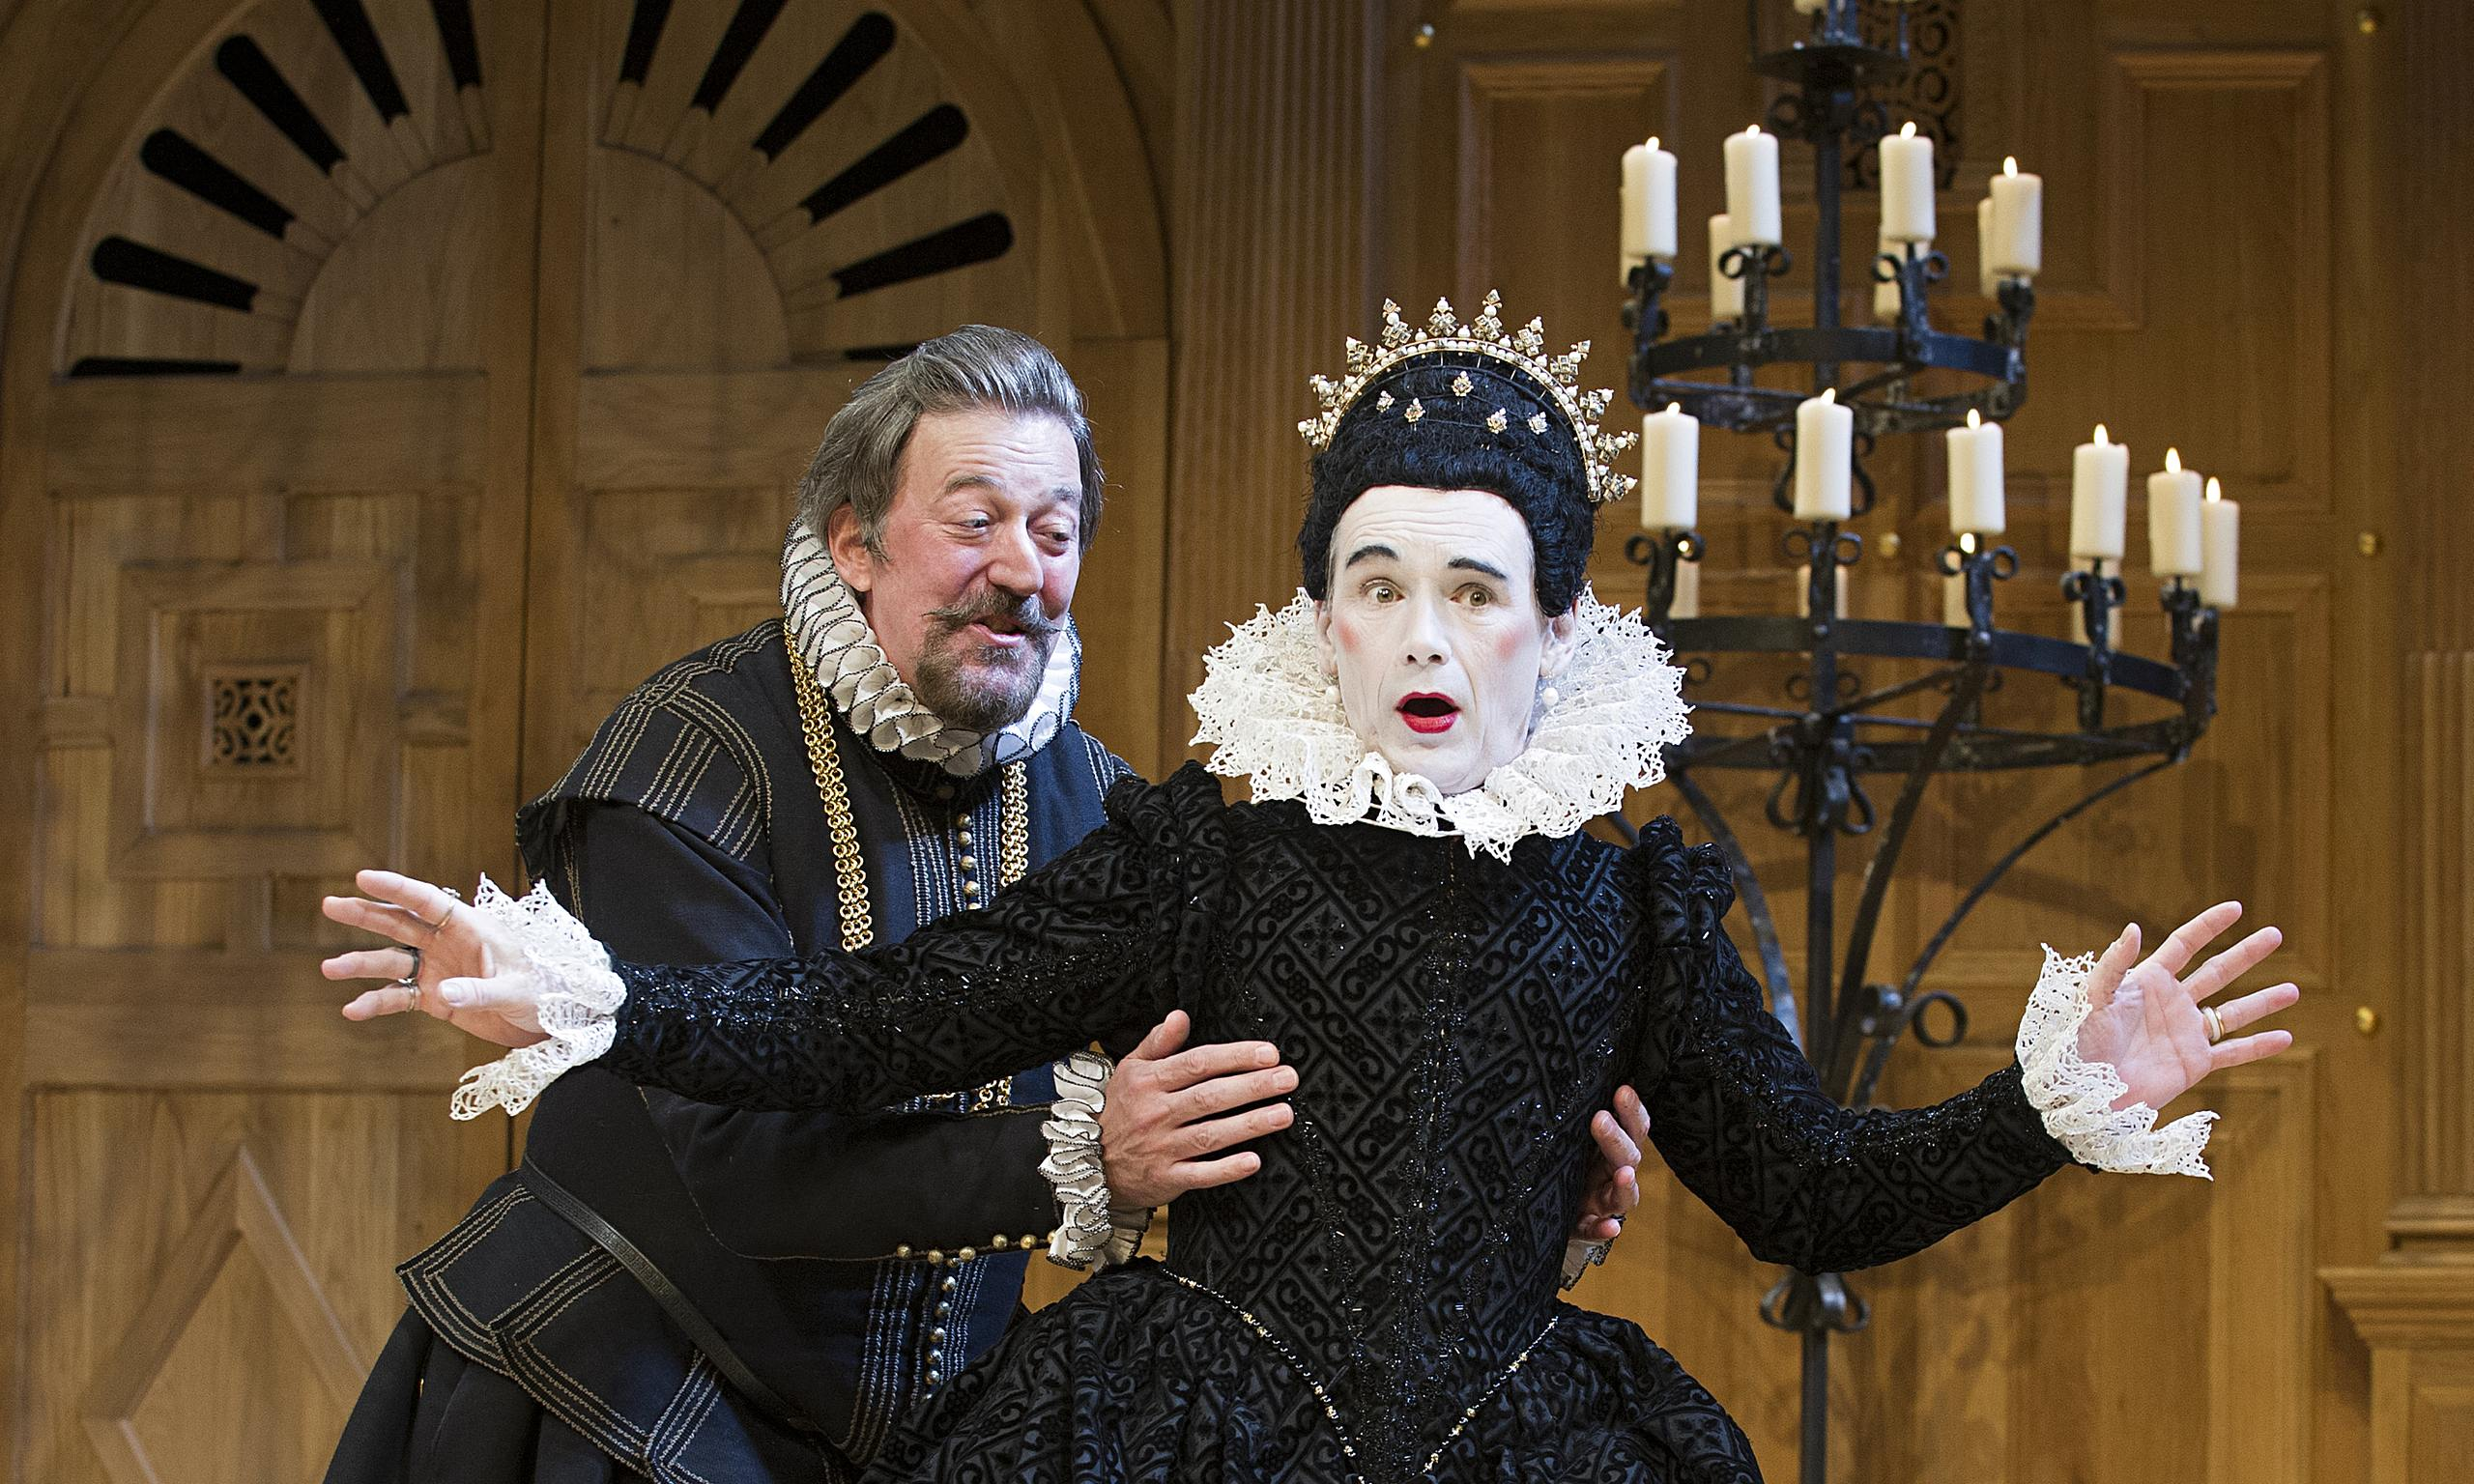 Laughter in twelfth night